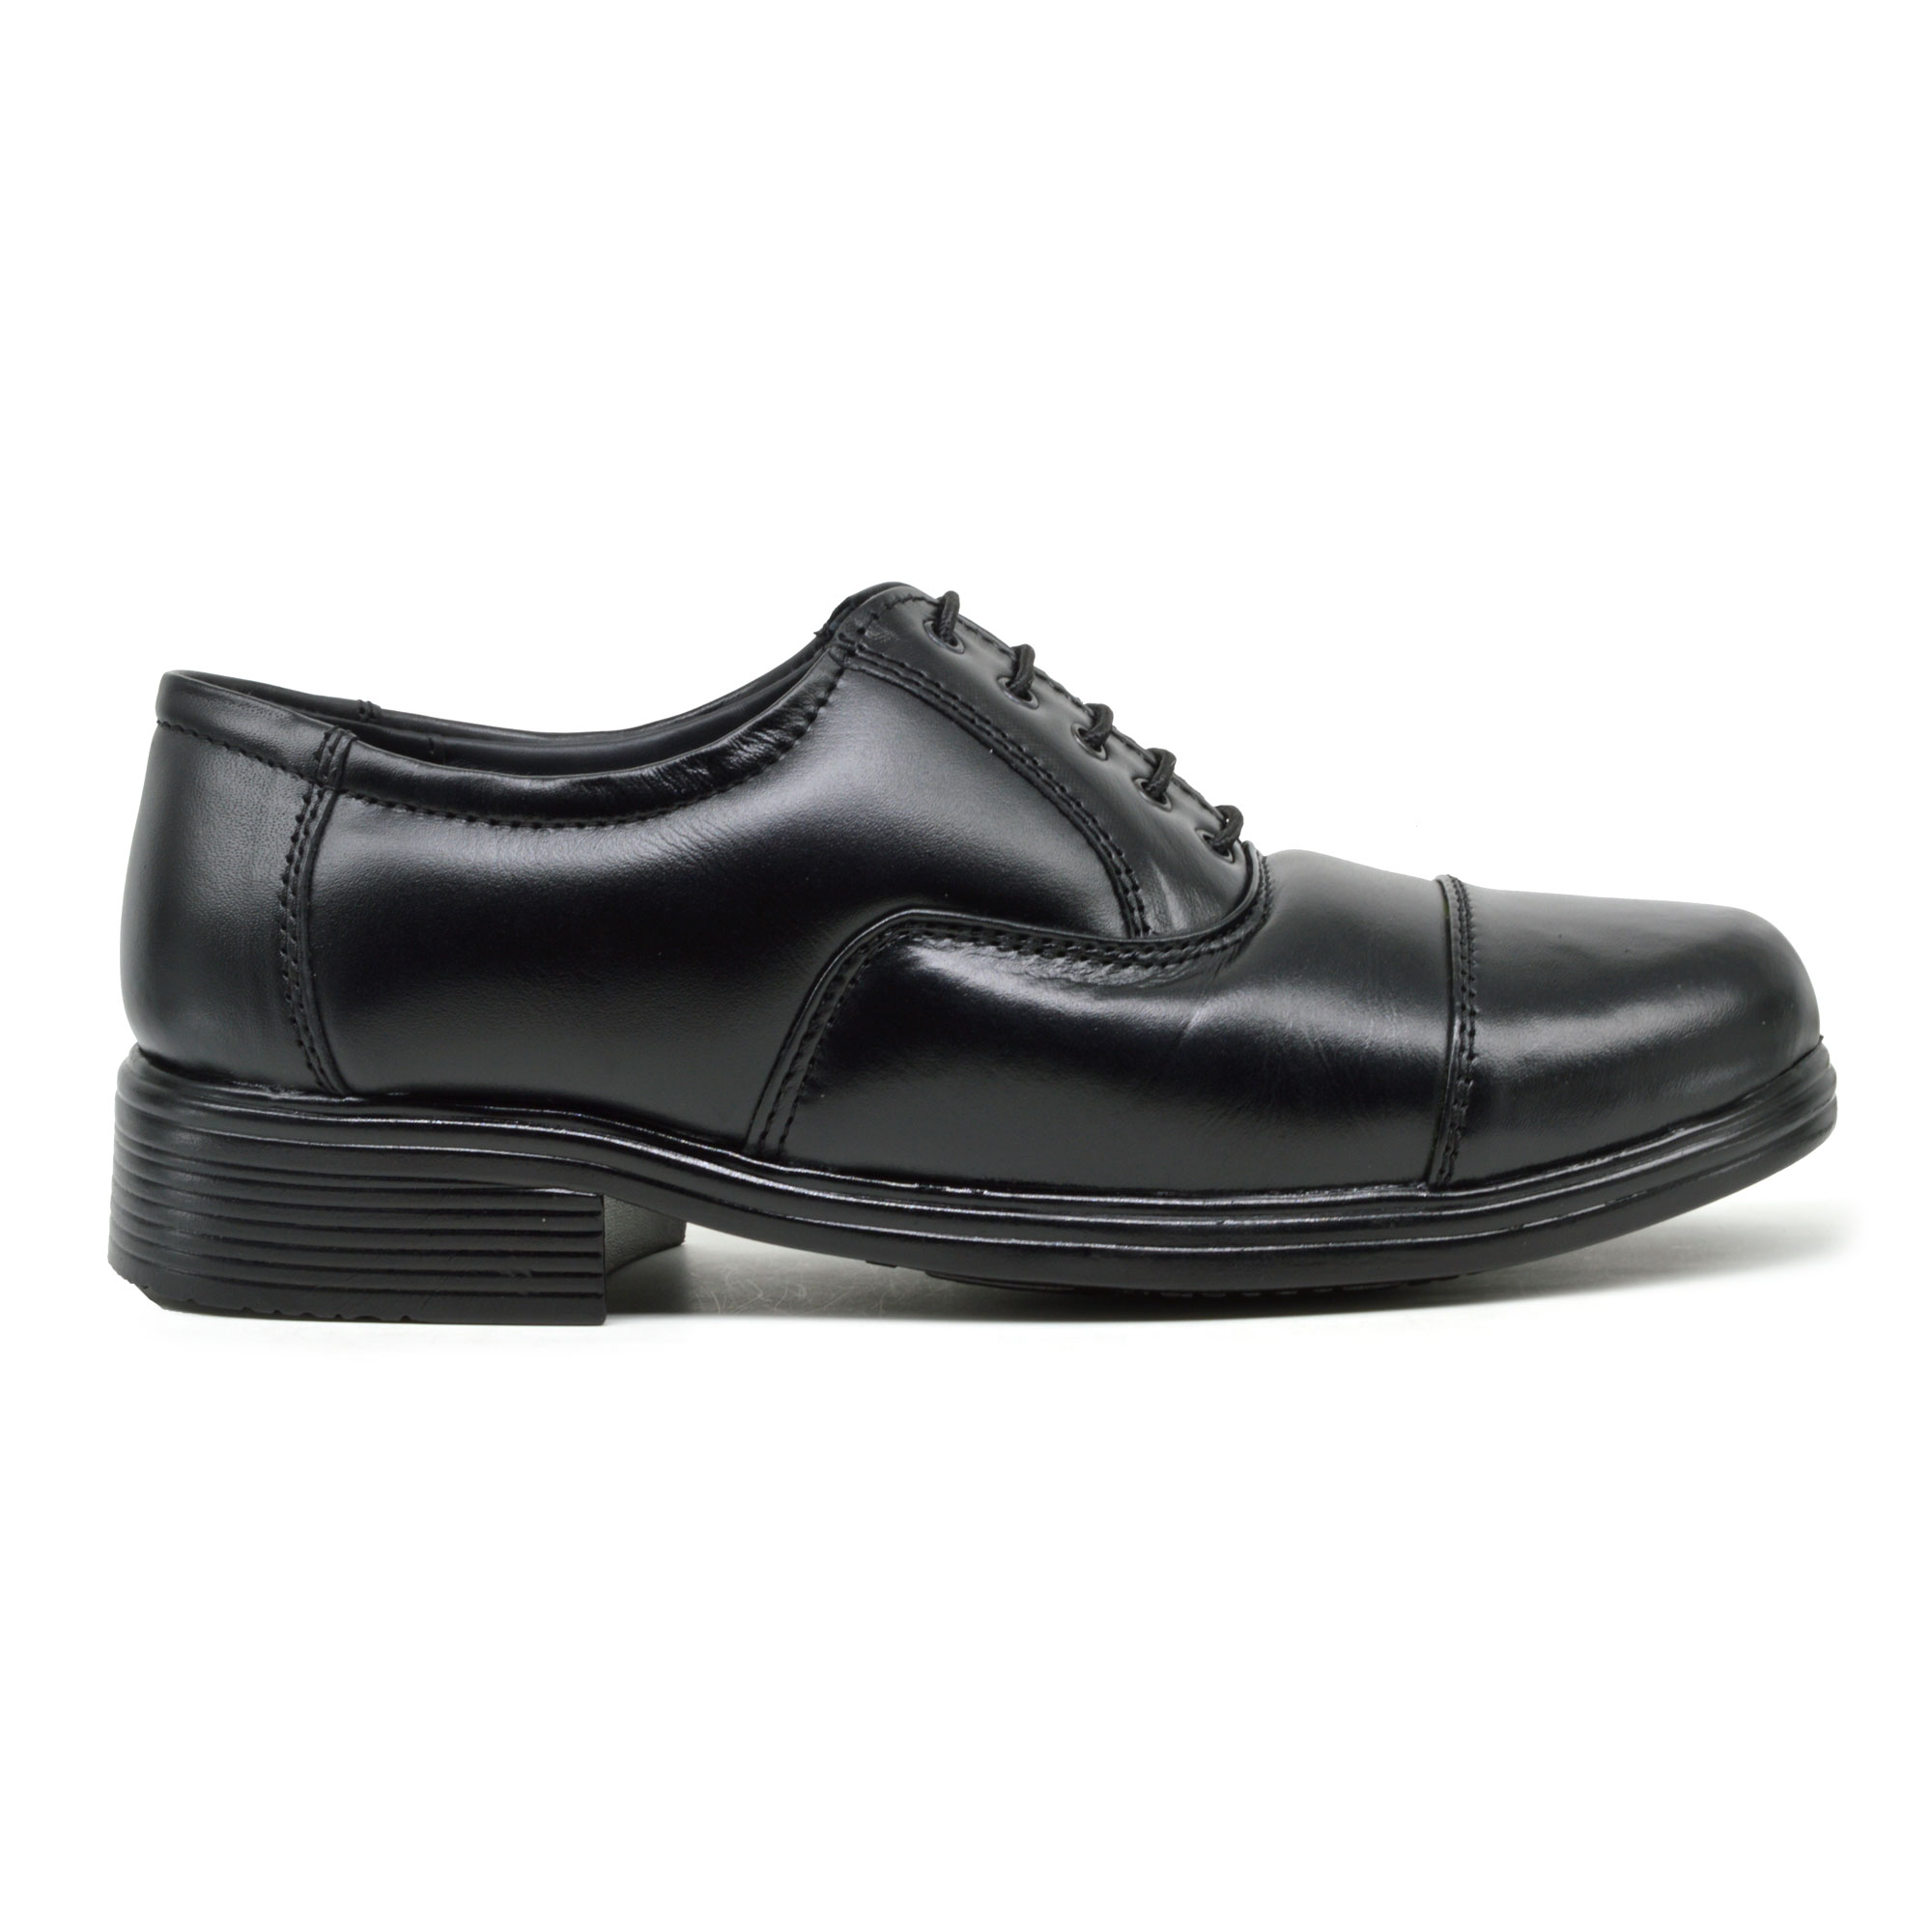 IMCOLUS214.302_BLACK SYNTHETIC LEATHER OXFORD POLICE SHOES FOR MEN AIRMIX SOLEIMCOLUS214.302_BLACK (BLACK,5-8,4 PAIR)